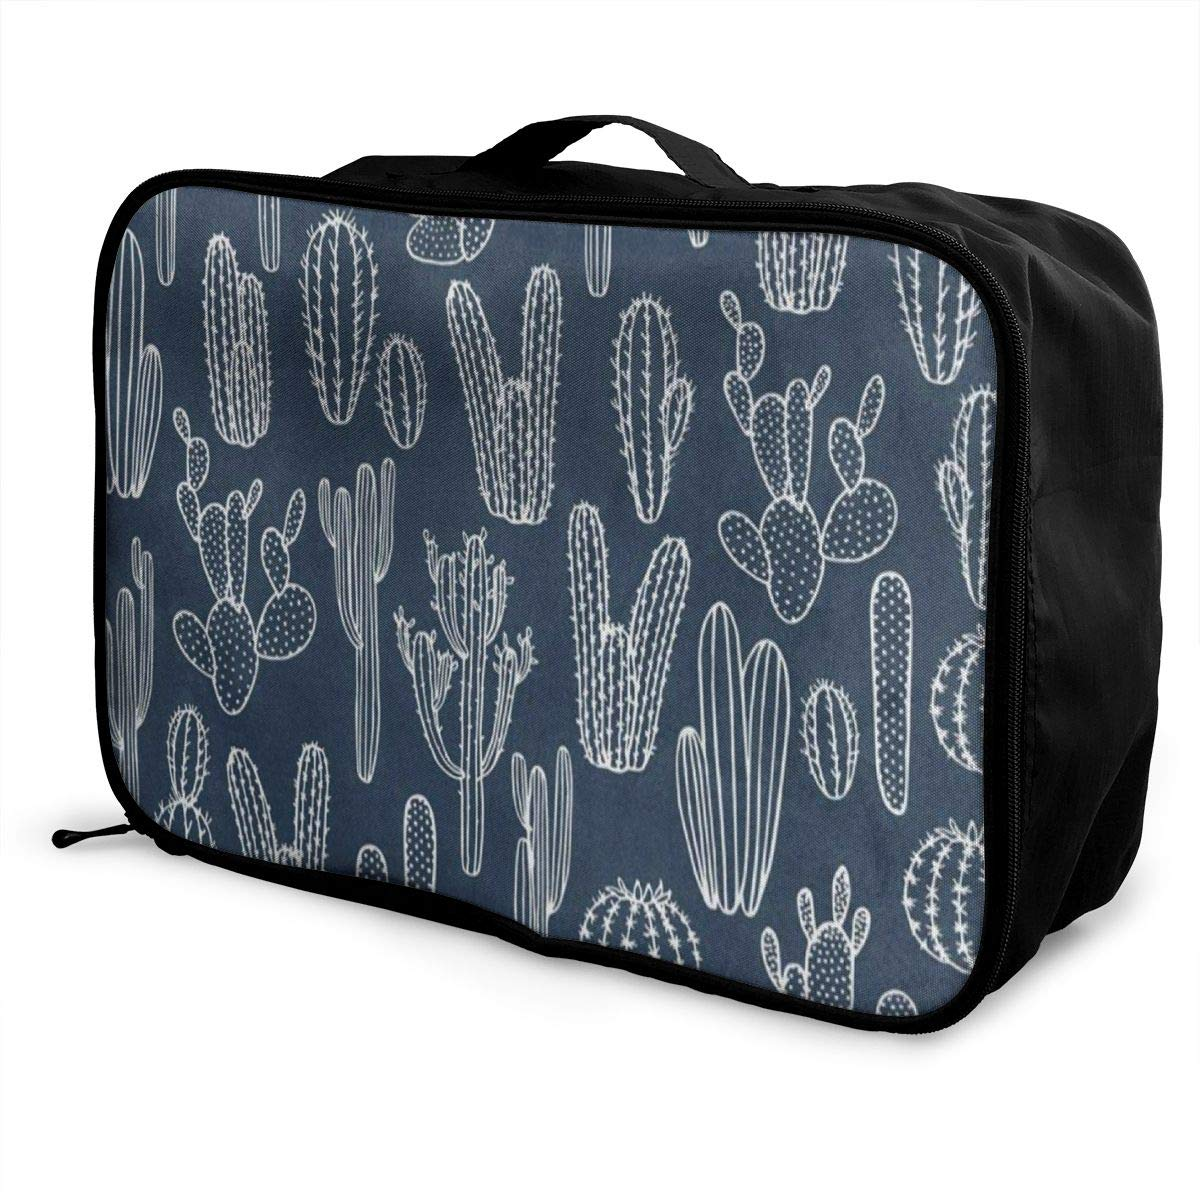 Portable Luggage Duffel Bag Watercolor Girl On The Beach Pattern Travel Bags Carry-on In Trolley Handle